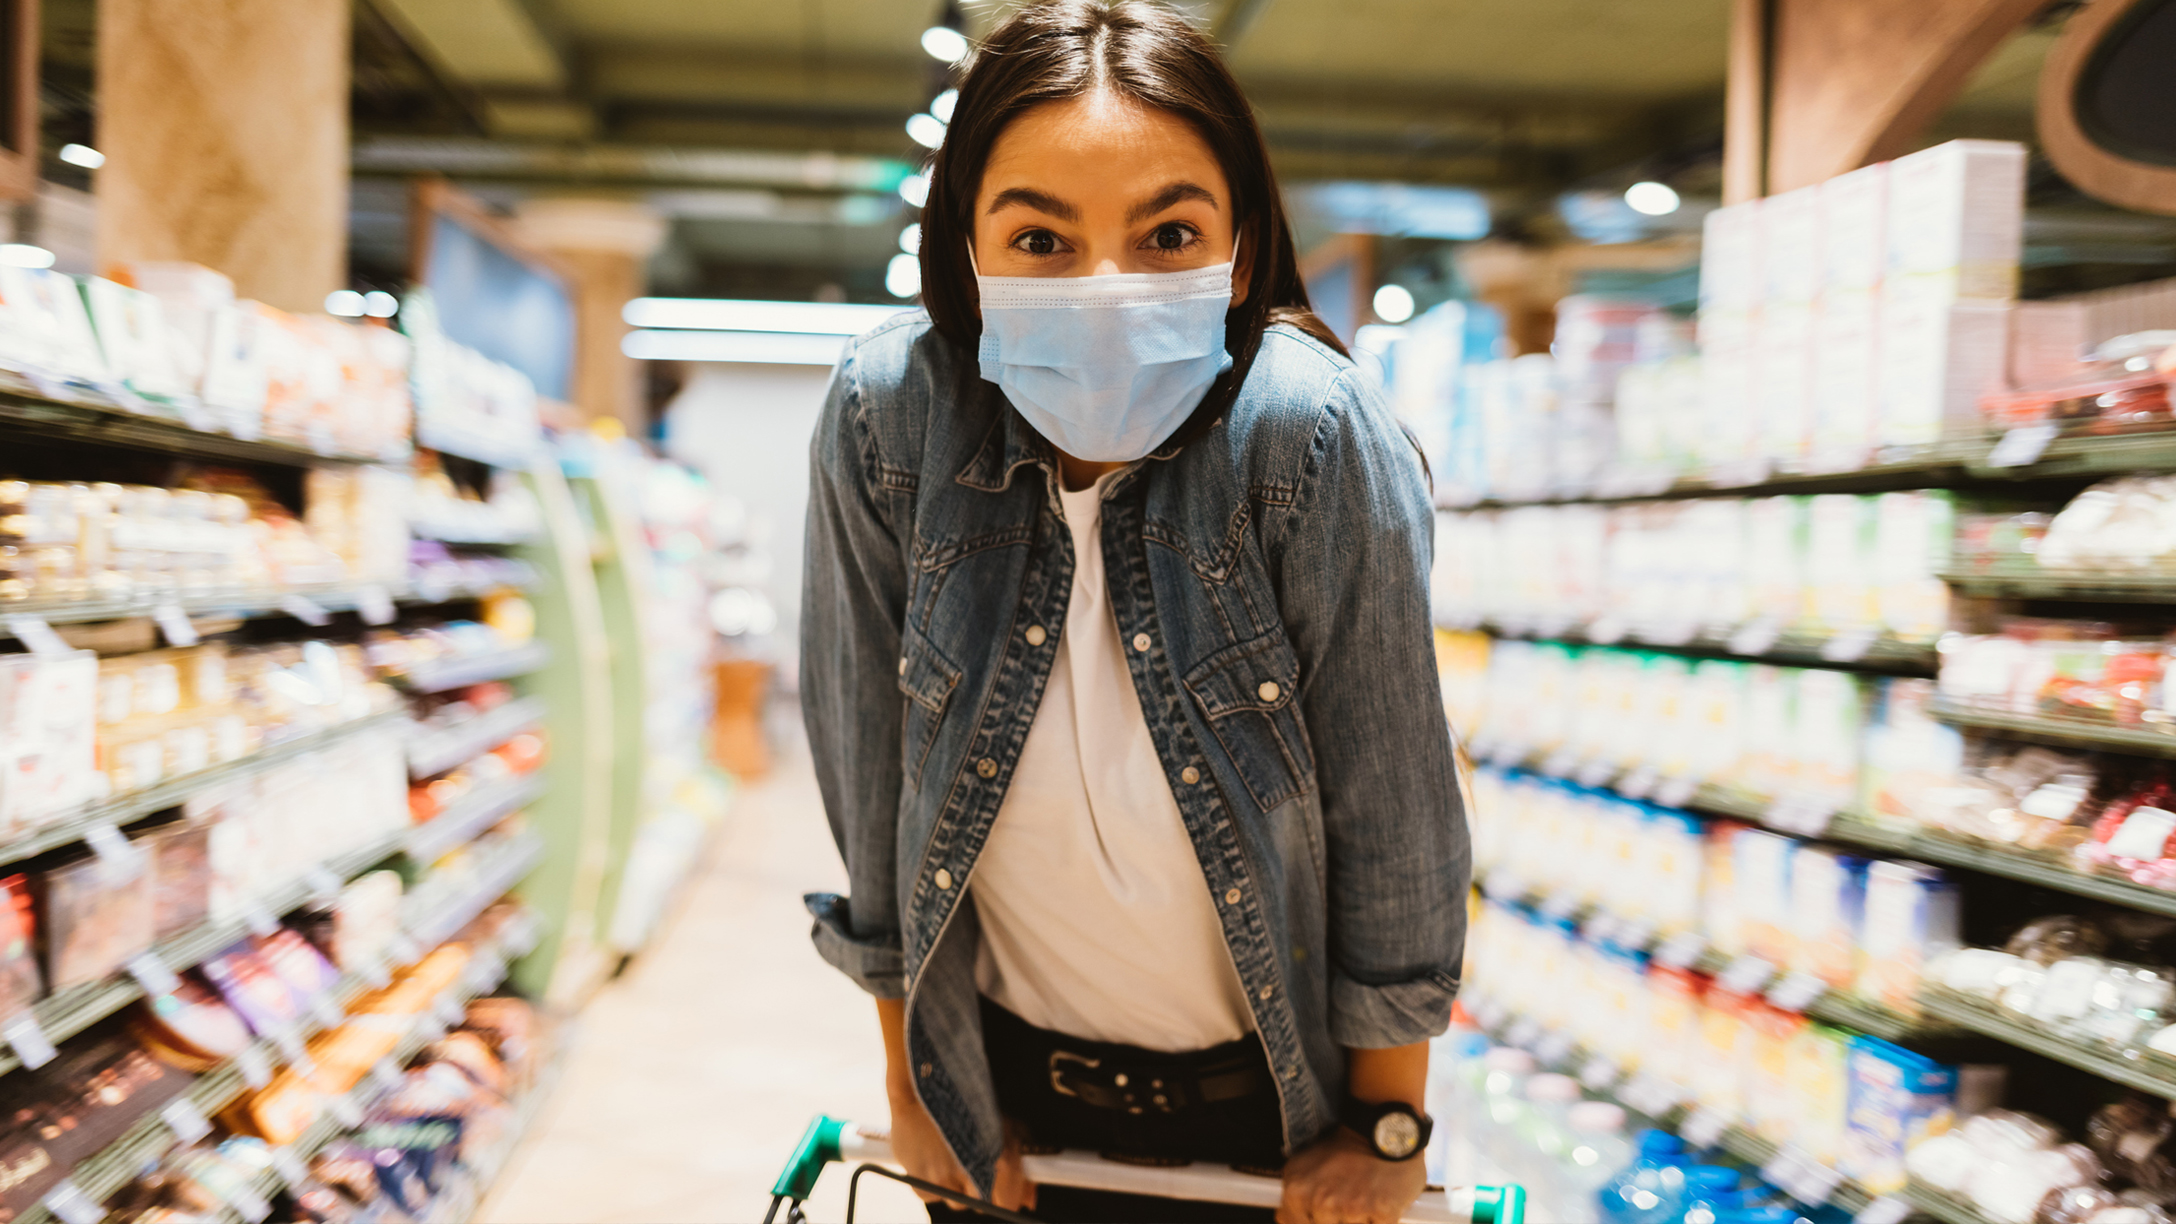 Mask Shaming is a Thing Now: How to Stand Your Ground